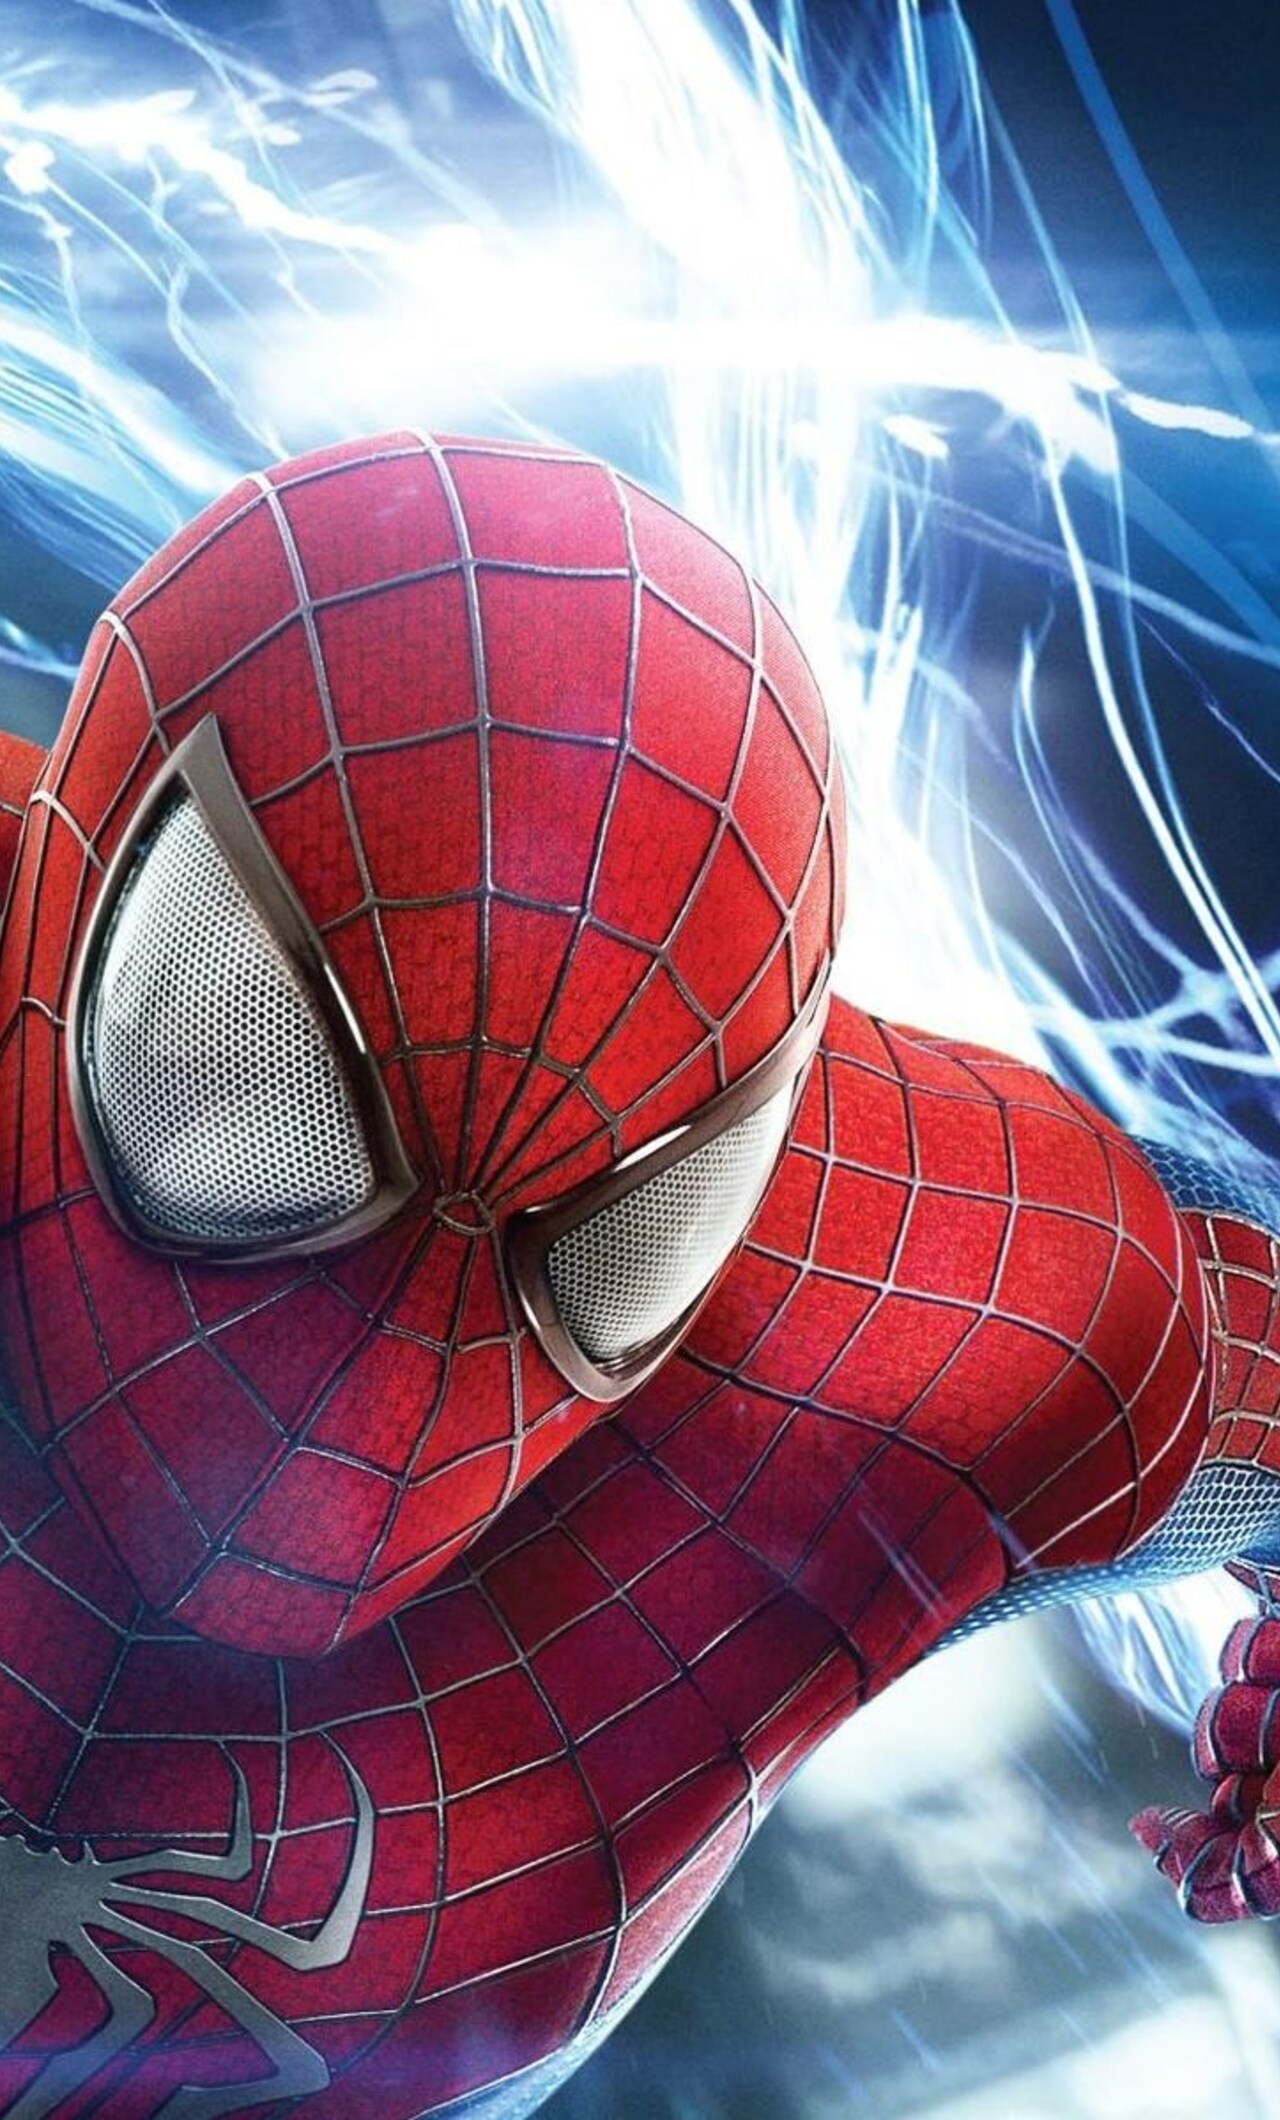 1280x2120 the amazing spider man 2 movie iphone 6+ hd 4k wallpapers